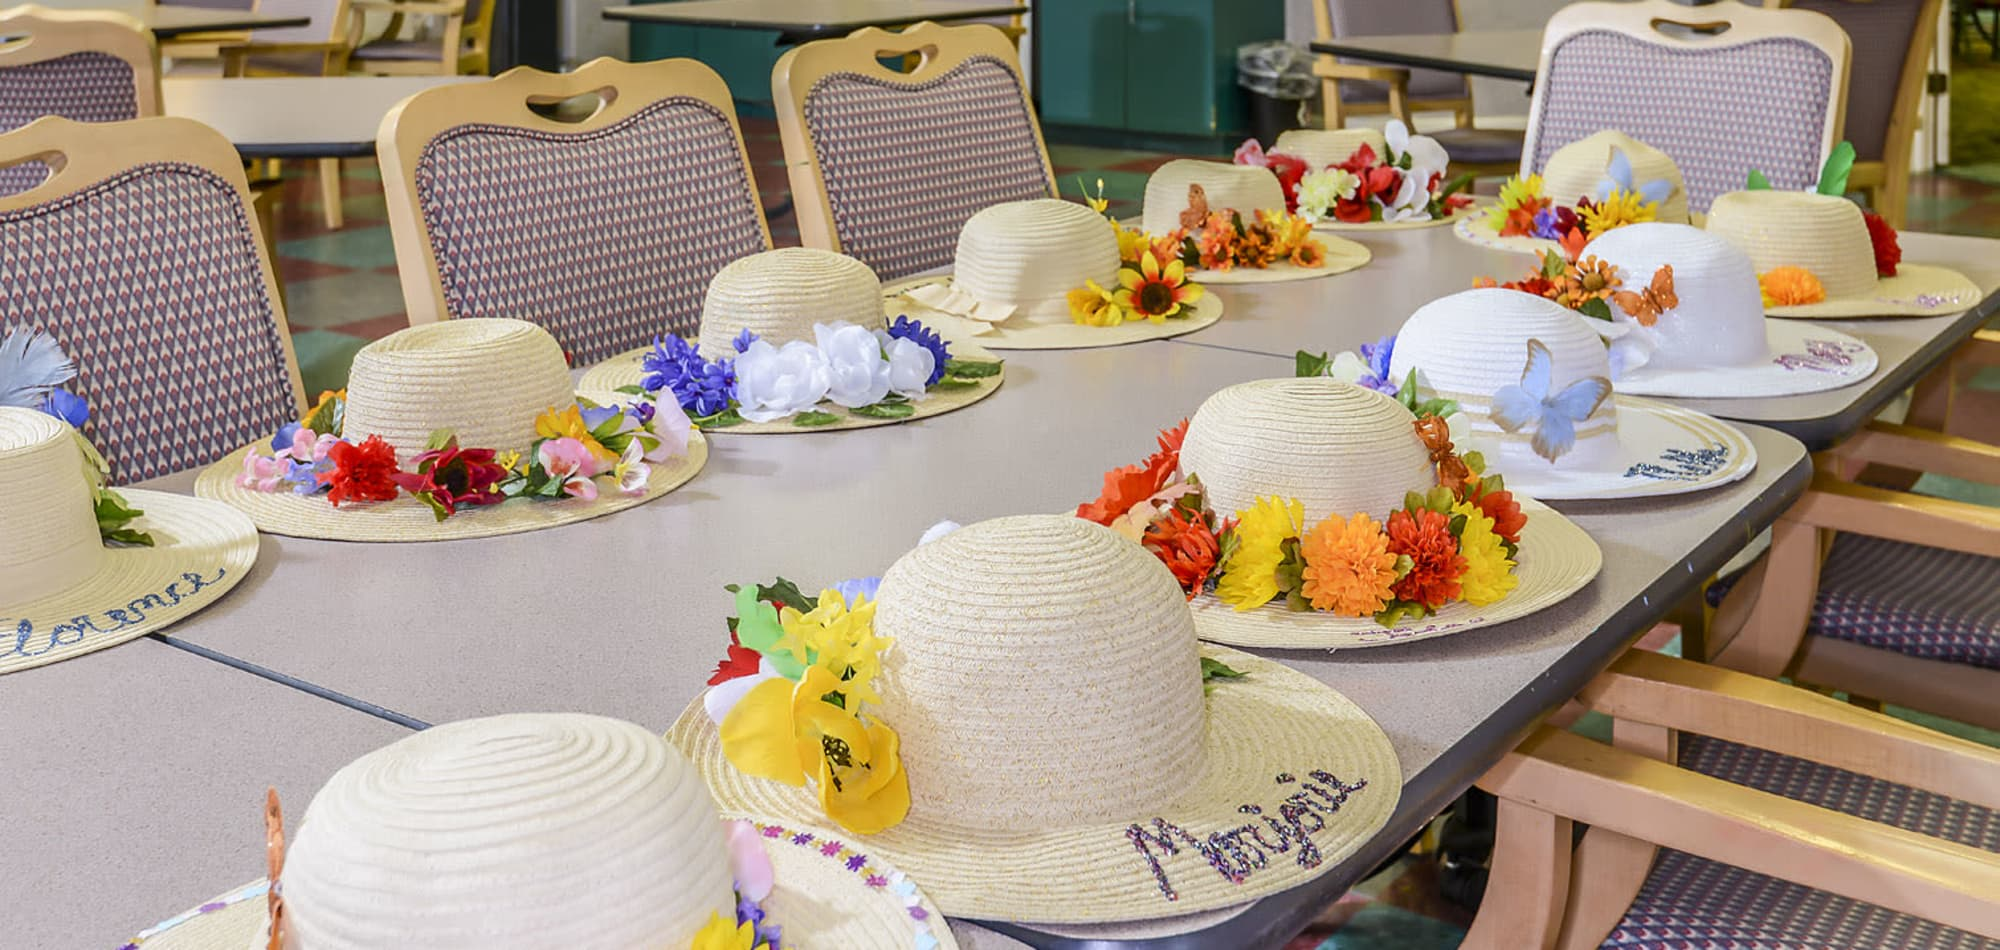 Arts and crafts activities for residents of Arbor Oaks at Tyrone in St. Petersburg, Florida